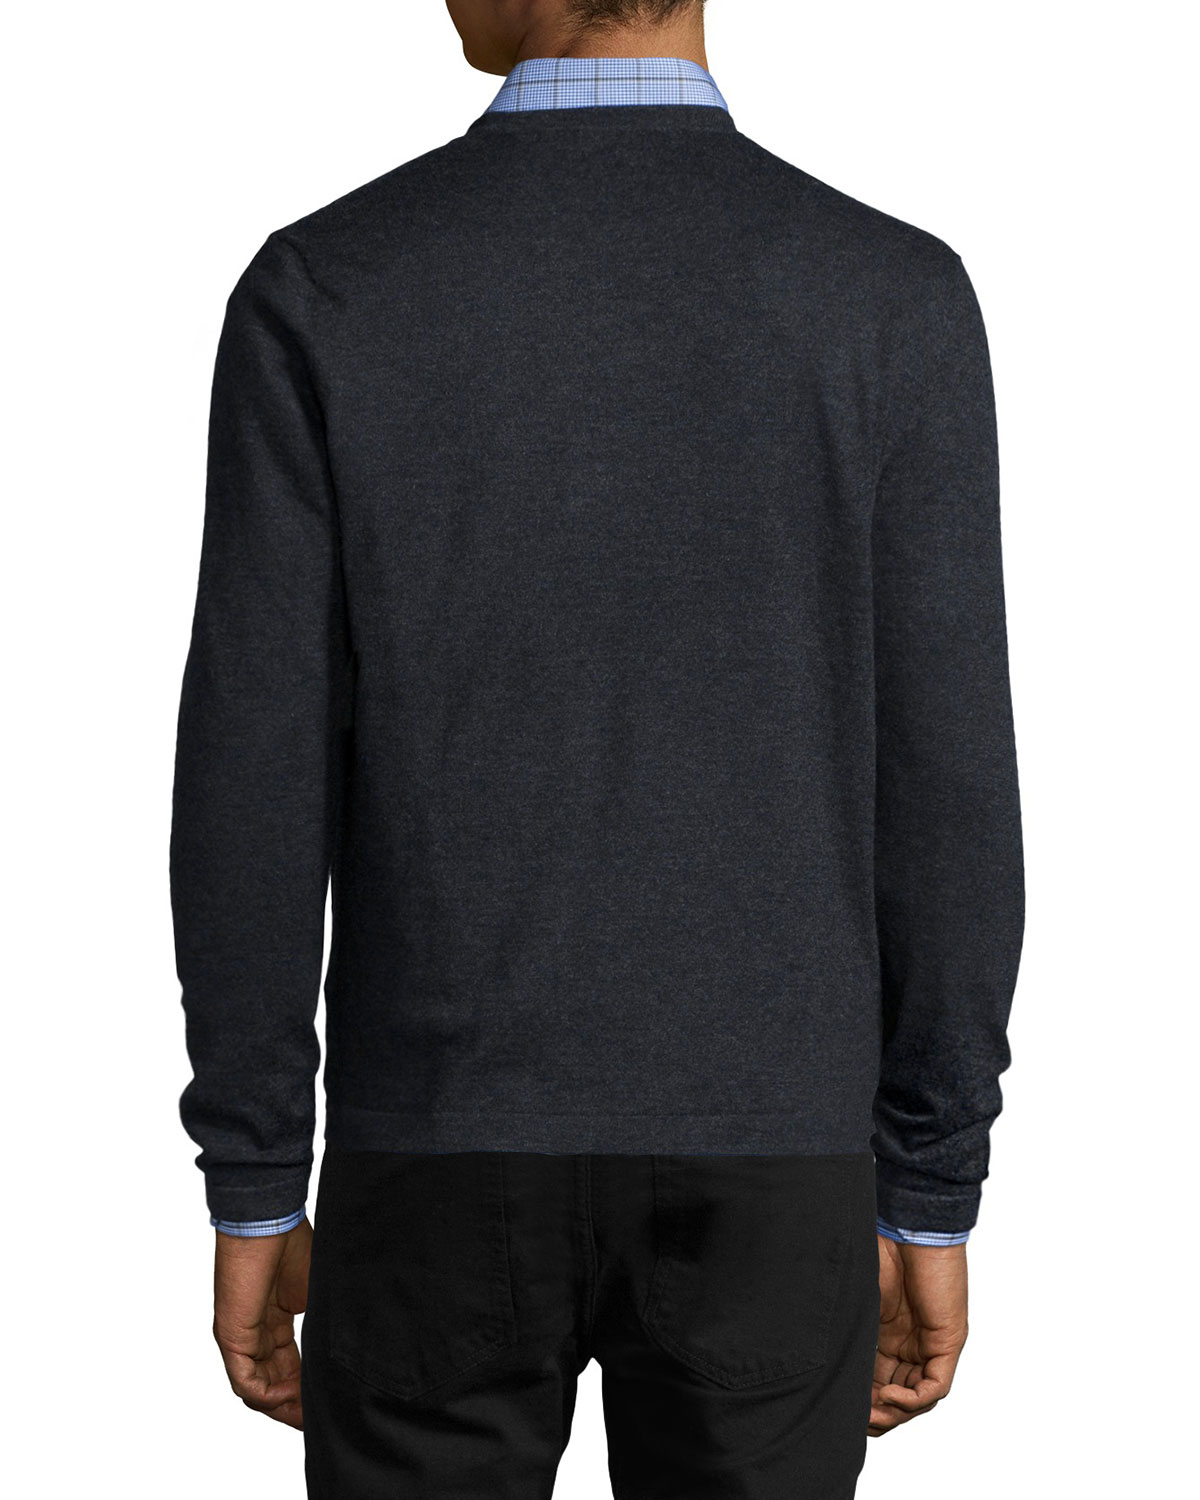 Neiman Marcus Tuck-Stitch Cashmere Crewneck Sweater Discount For Nice Get Authentic Online NUfkwT